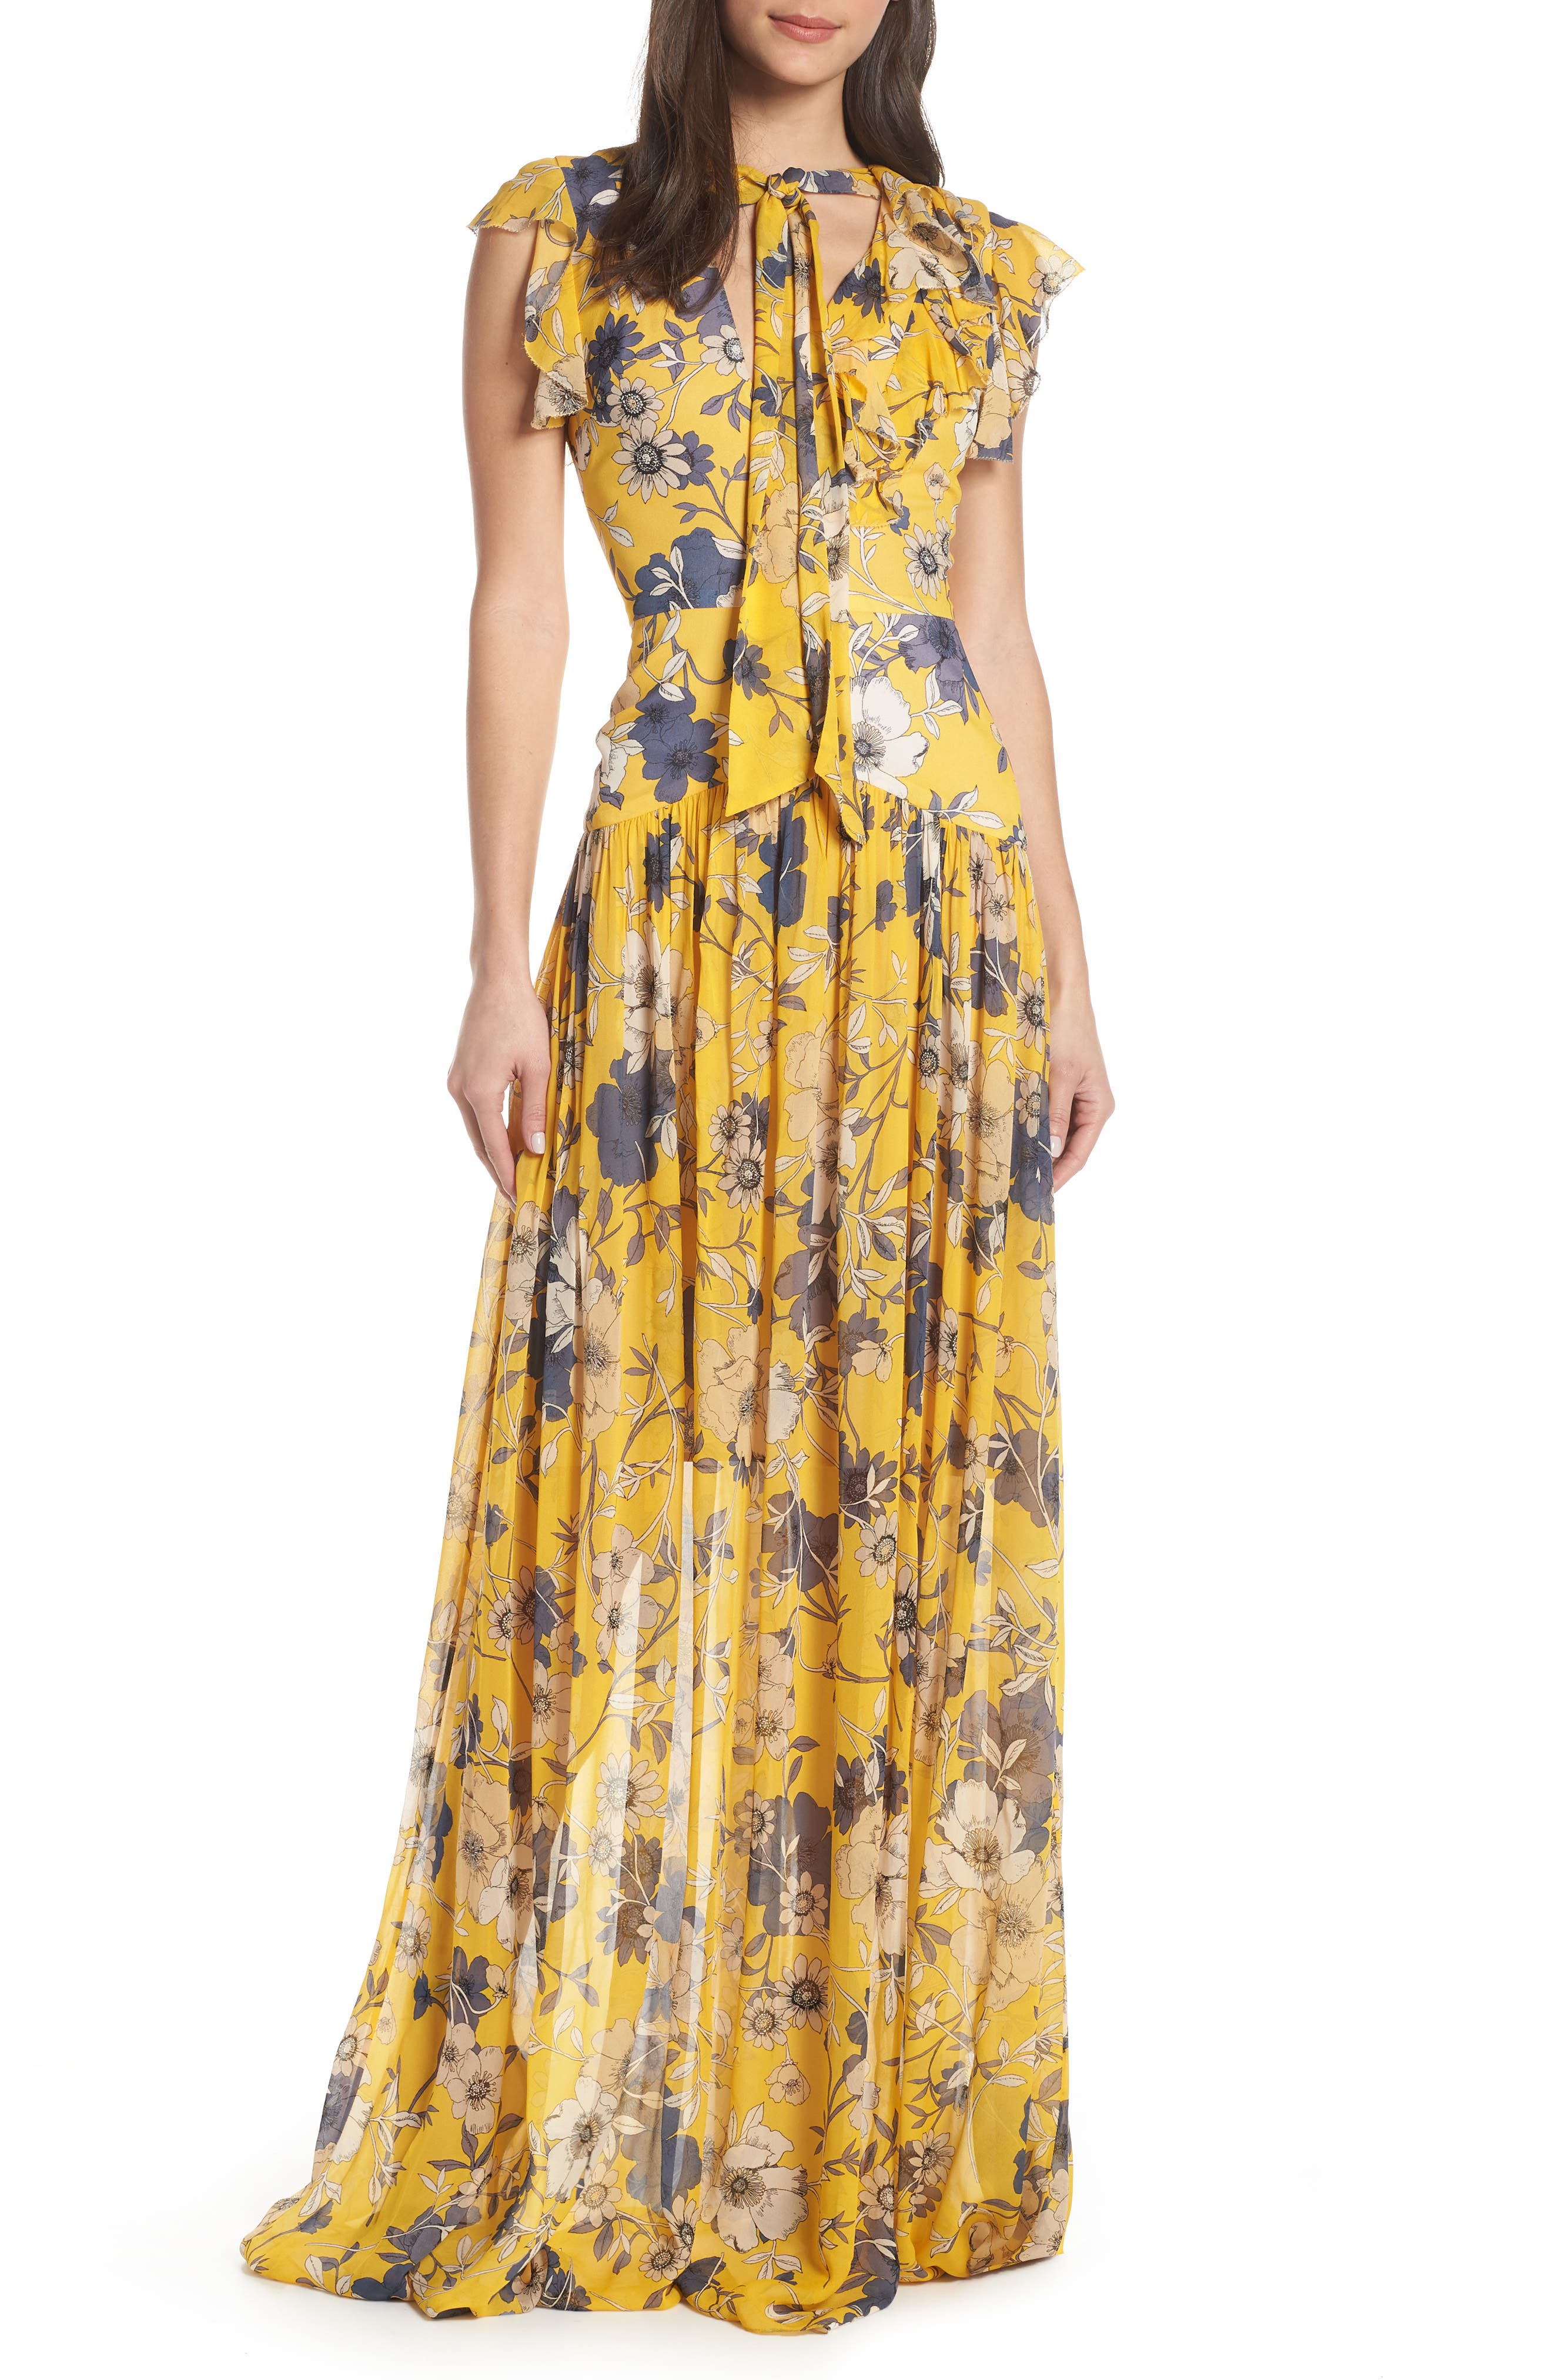 1930s Dresses | 30s Art Deco Dress Womens Ml Monique Lhuillier Floral Maxi Dress Size 16 - Yellow $595.00 AT vintagedancer.com